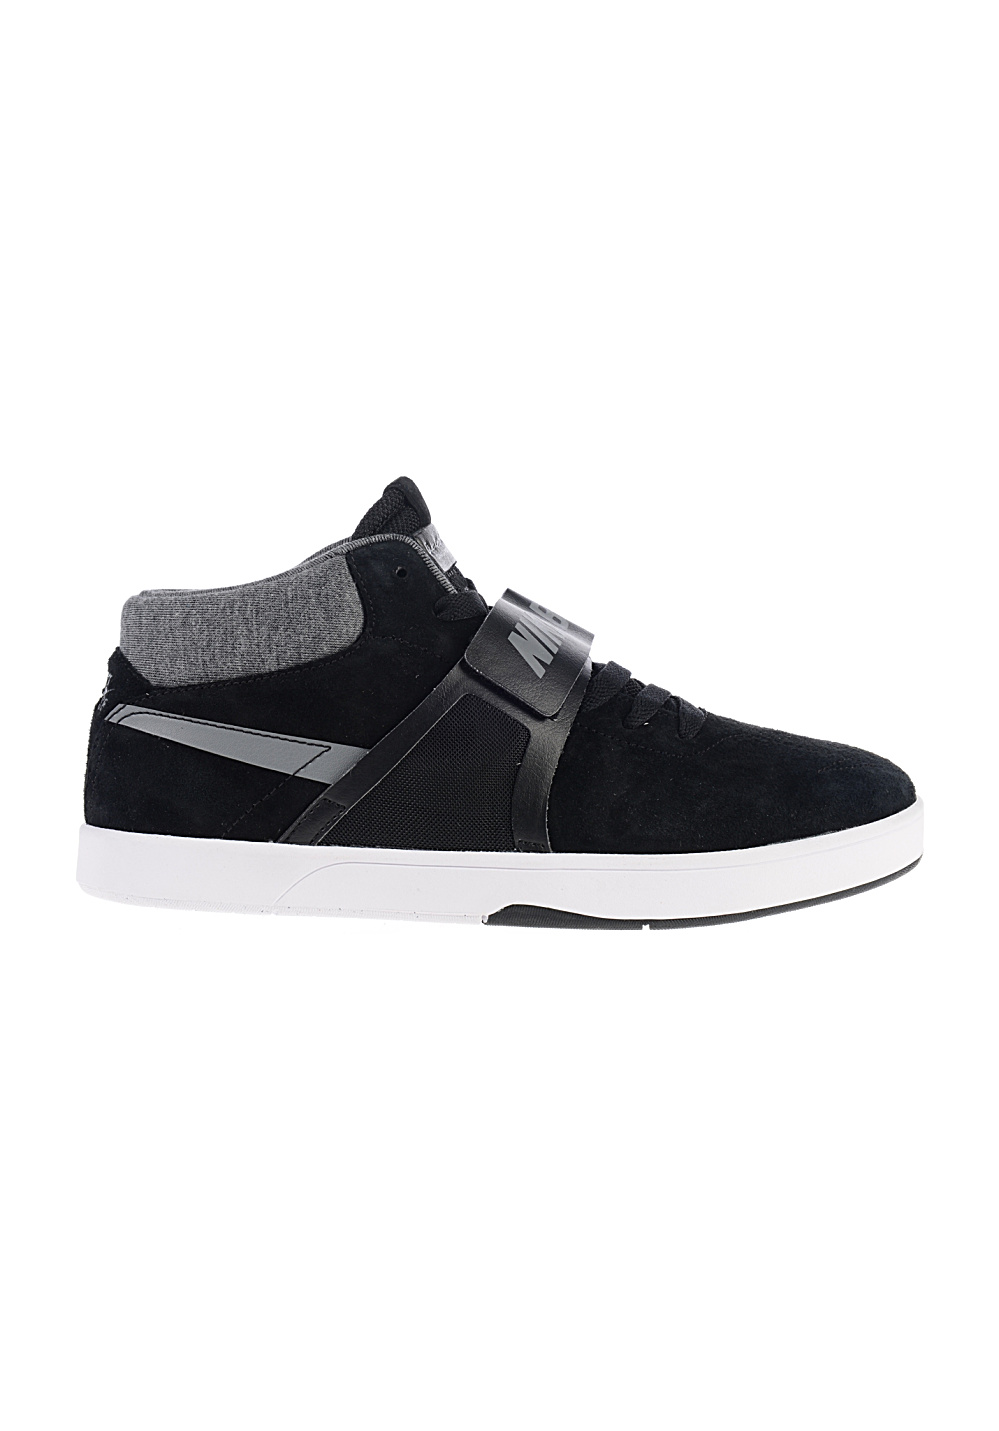 nike sb eric koston mid prem baskets pour homme noir planet sports. Black Bedroom Furniture Sets. Home Design Ideas